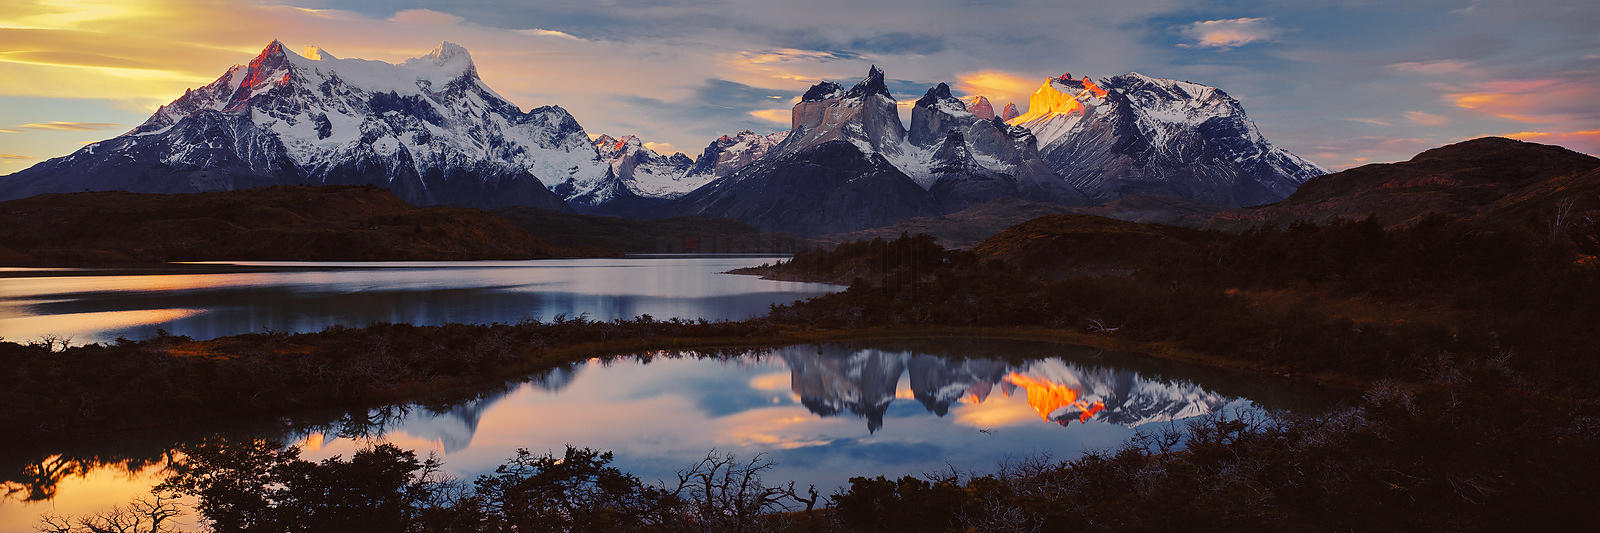 Lake Pehoe and Los Cuernos del Paine